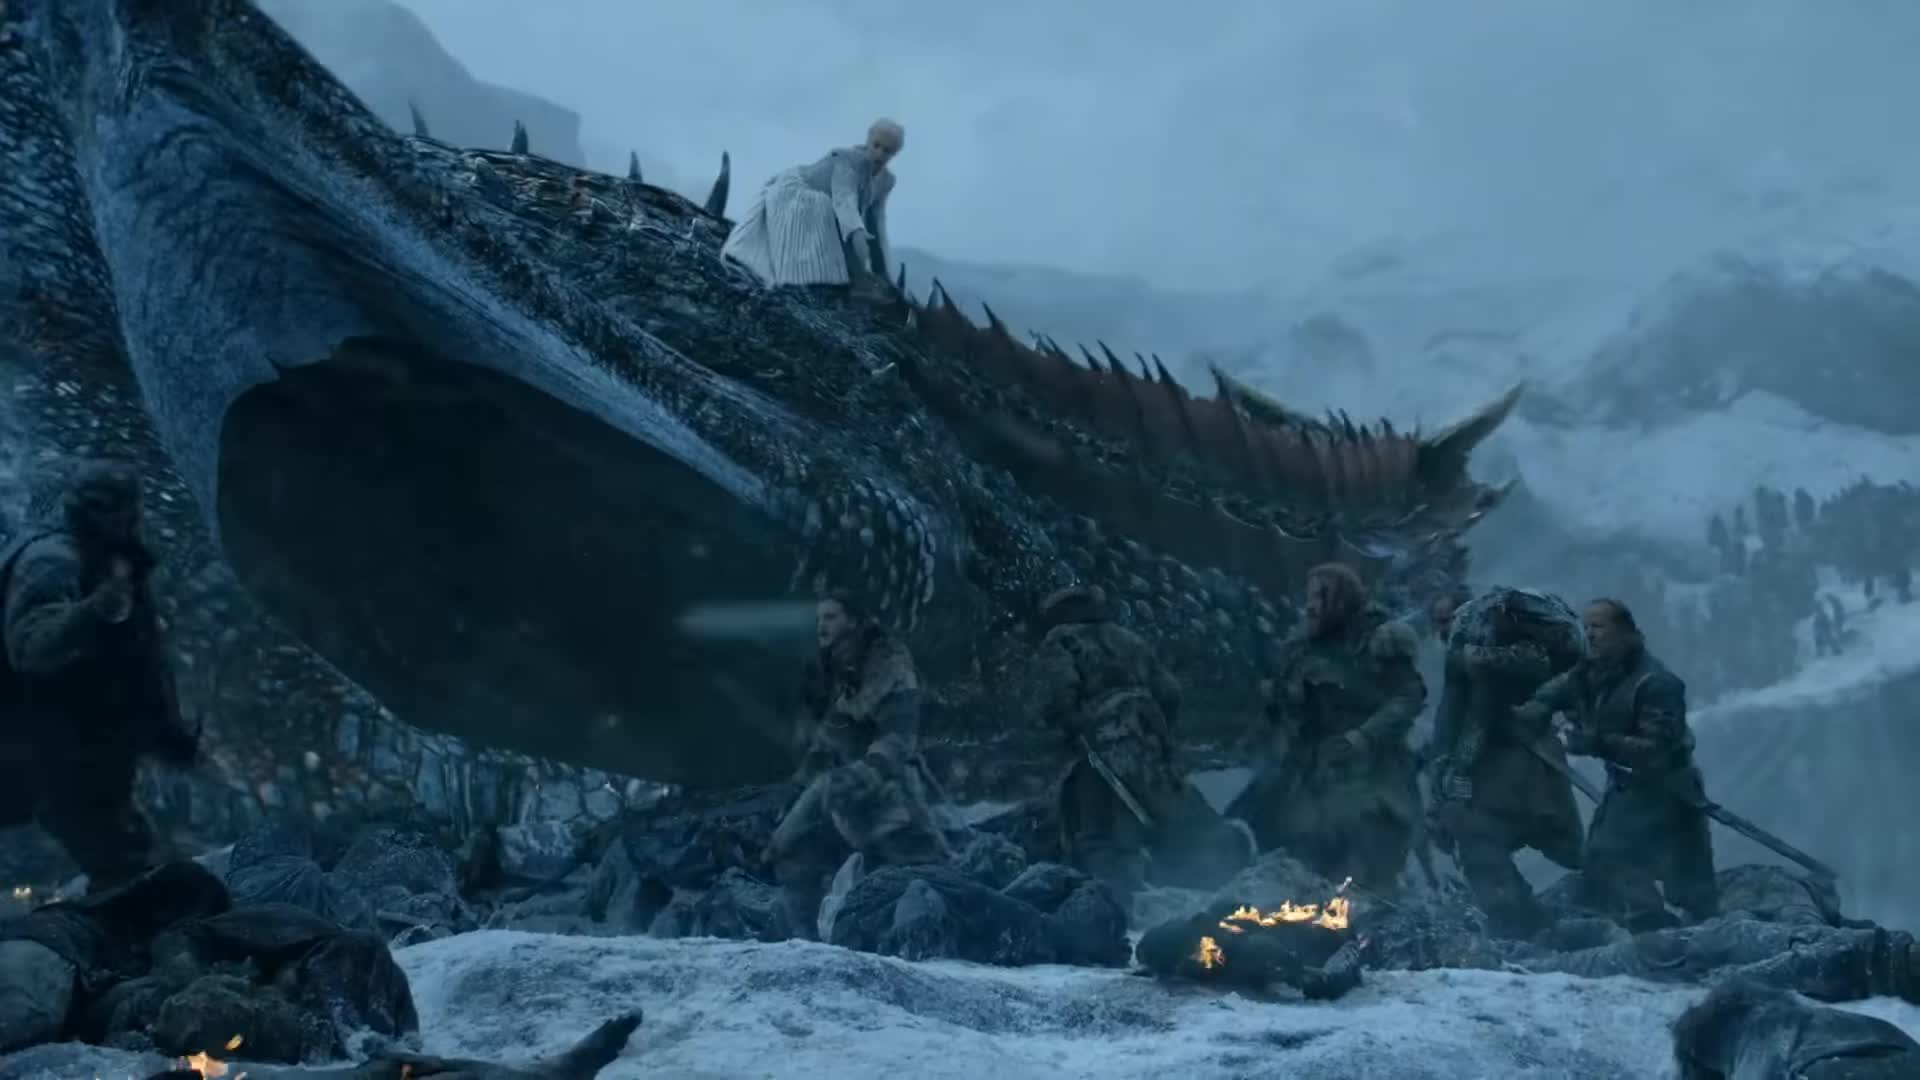 Game Of Thrones Season 7 Episode 6 Beyond The Wall The Frozen